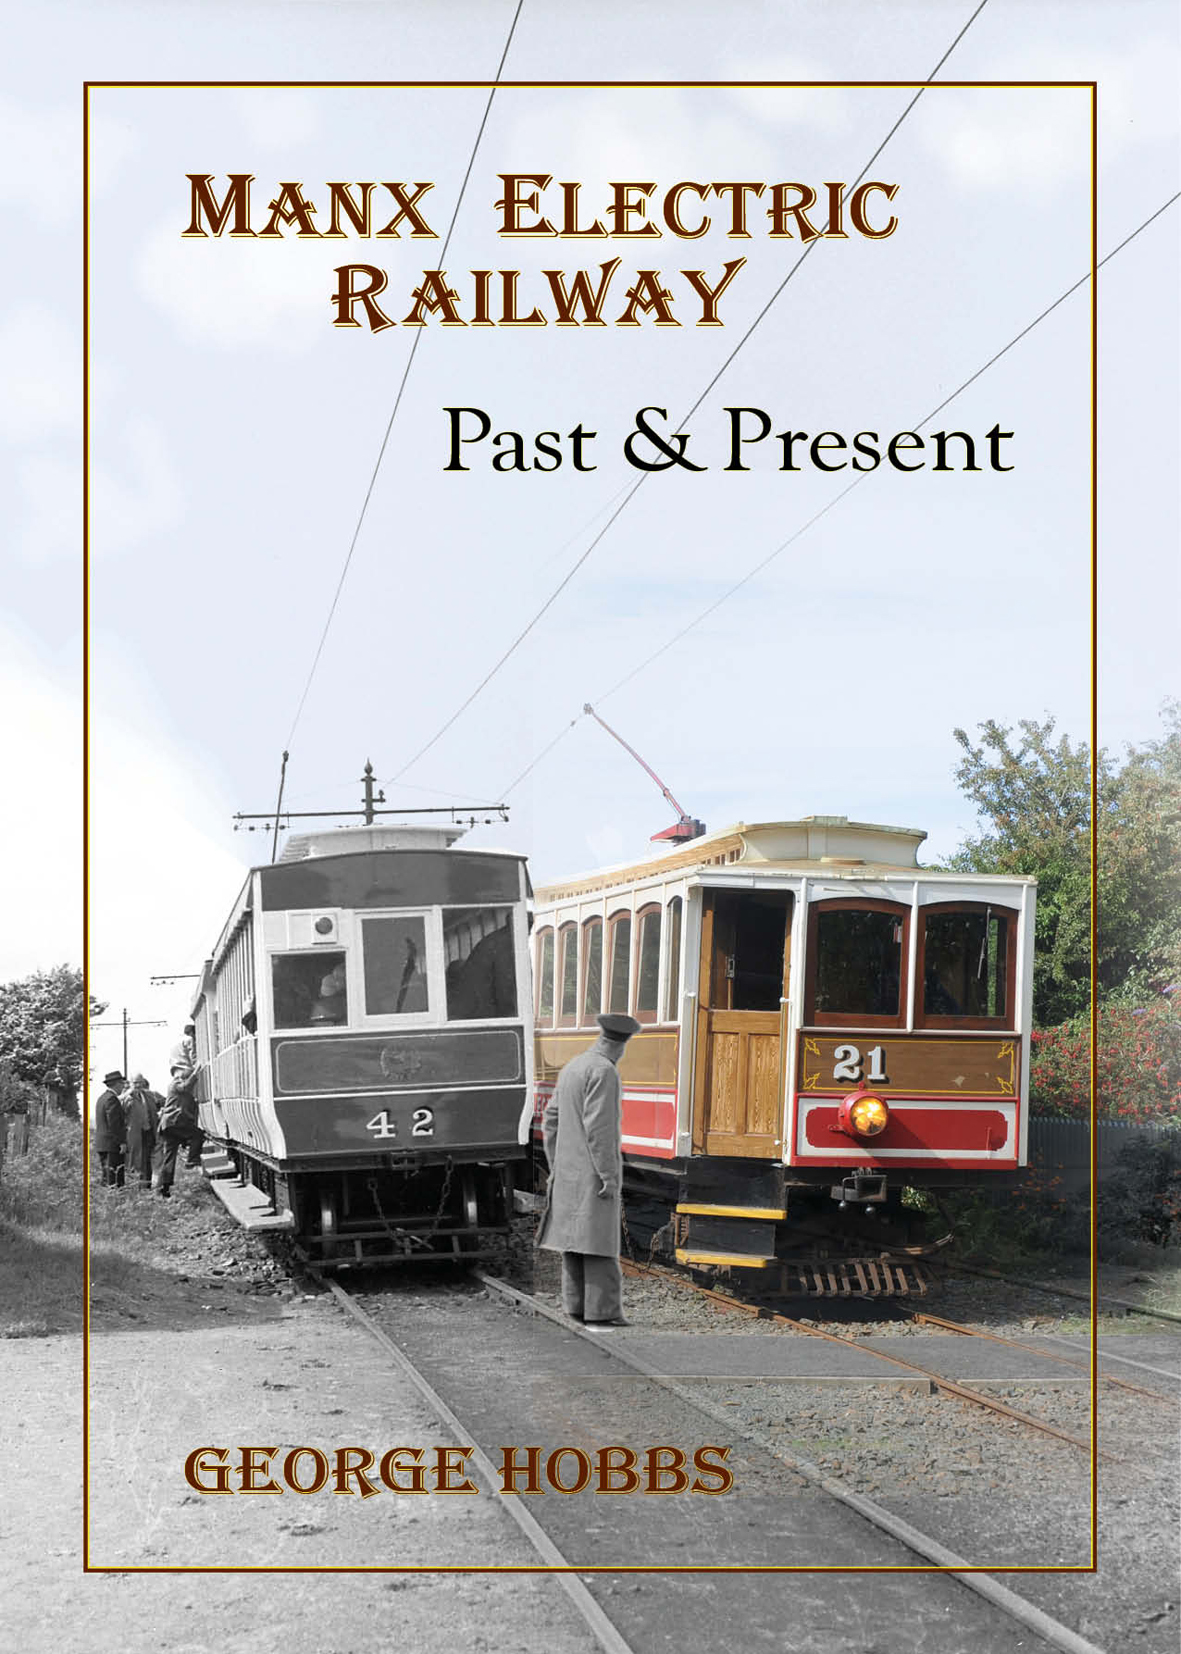 Image of Manx Electric Railway:past & present book cover